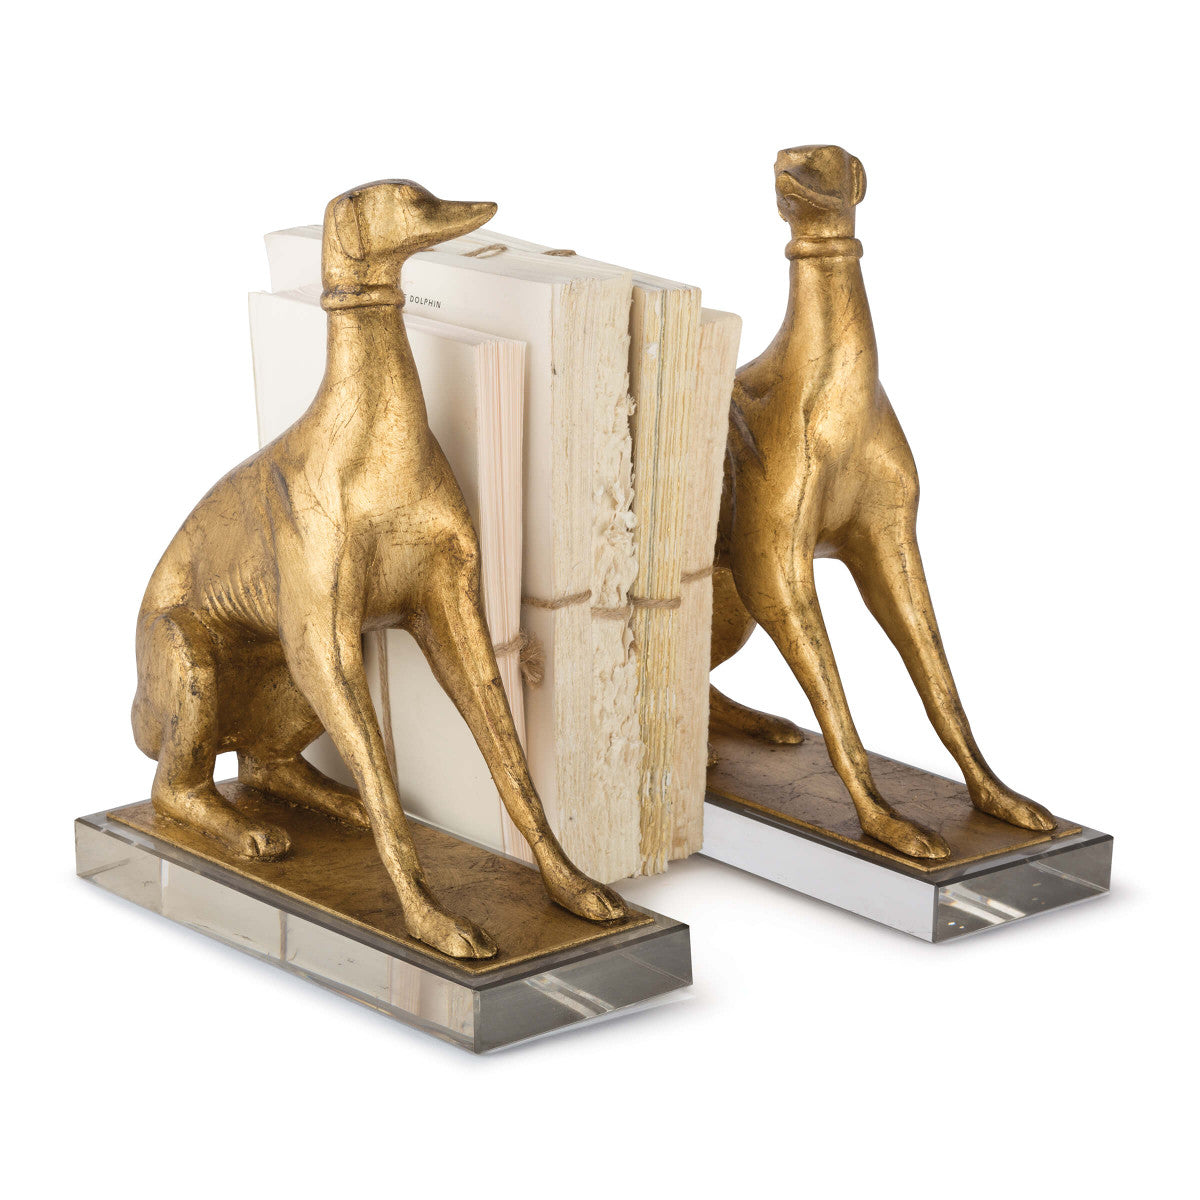 Norman Bookends 20-1263